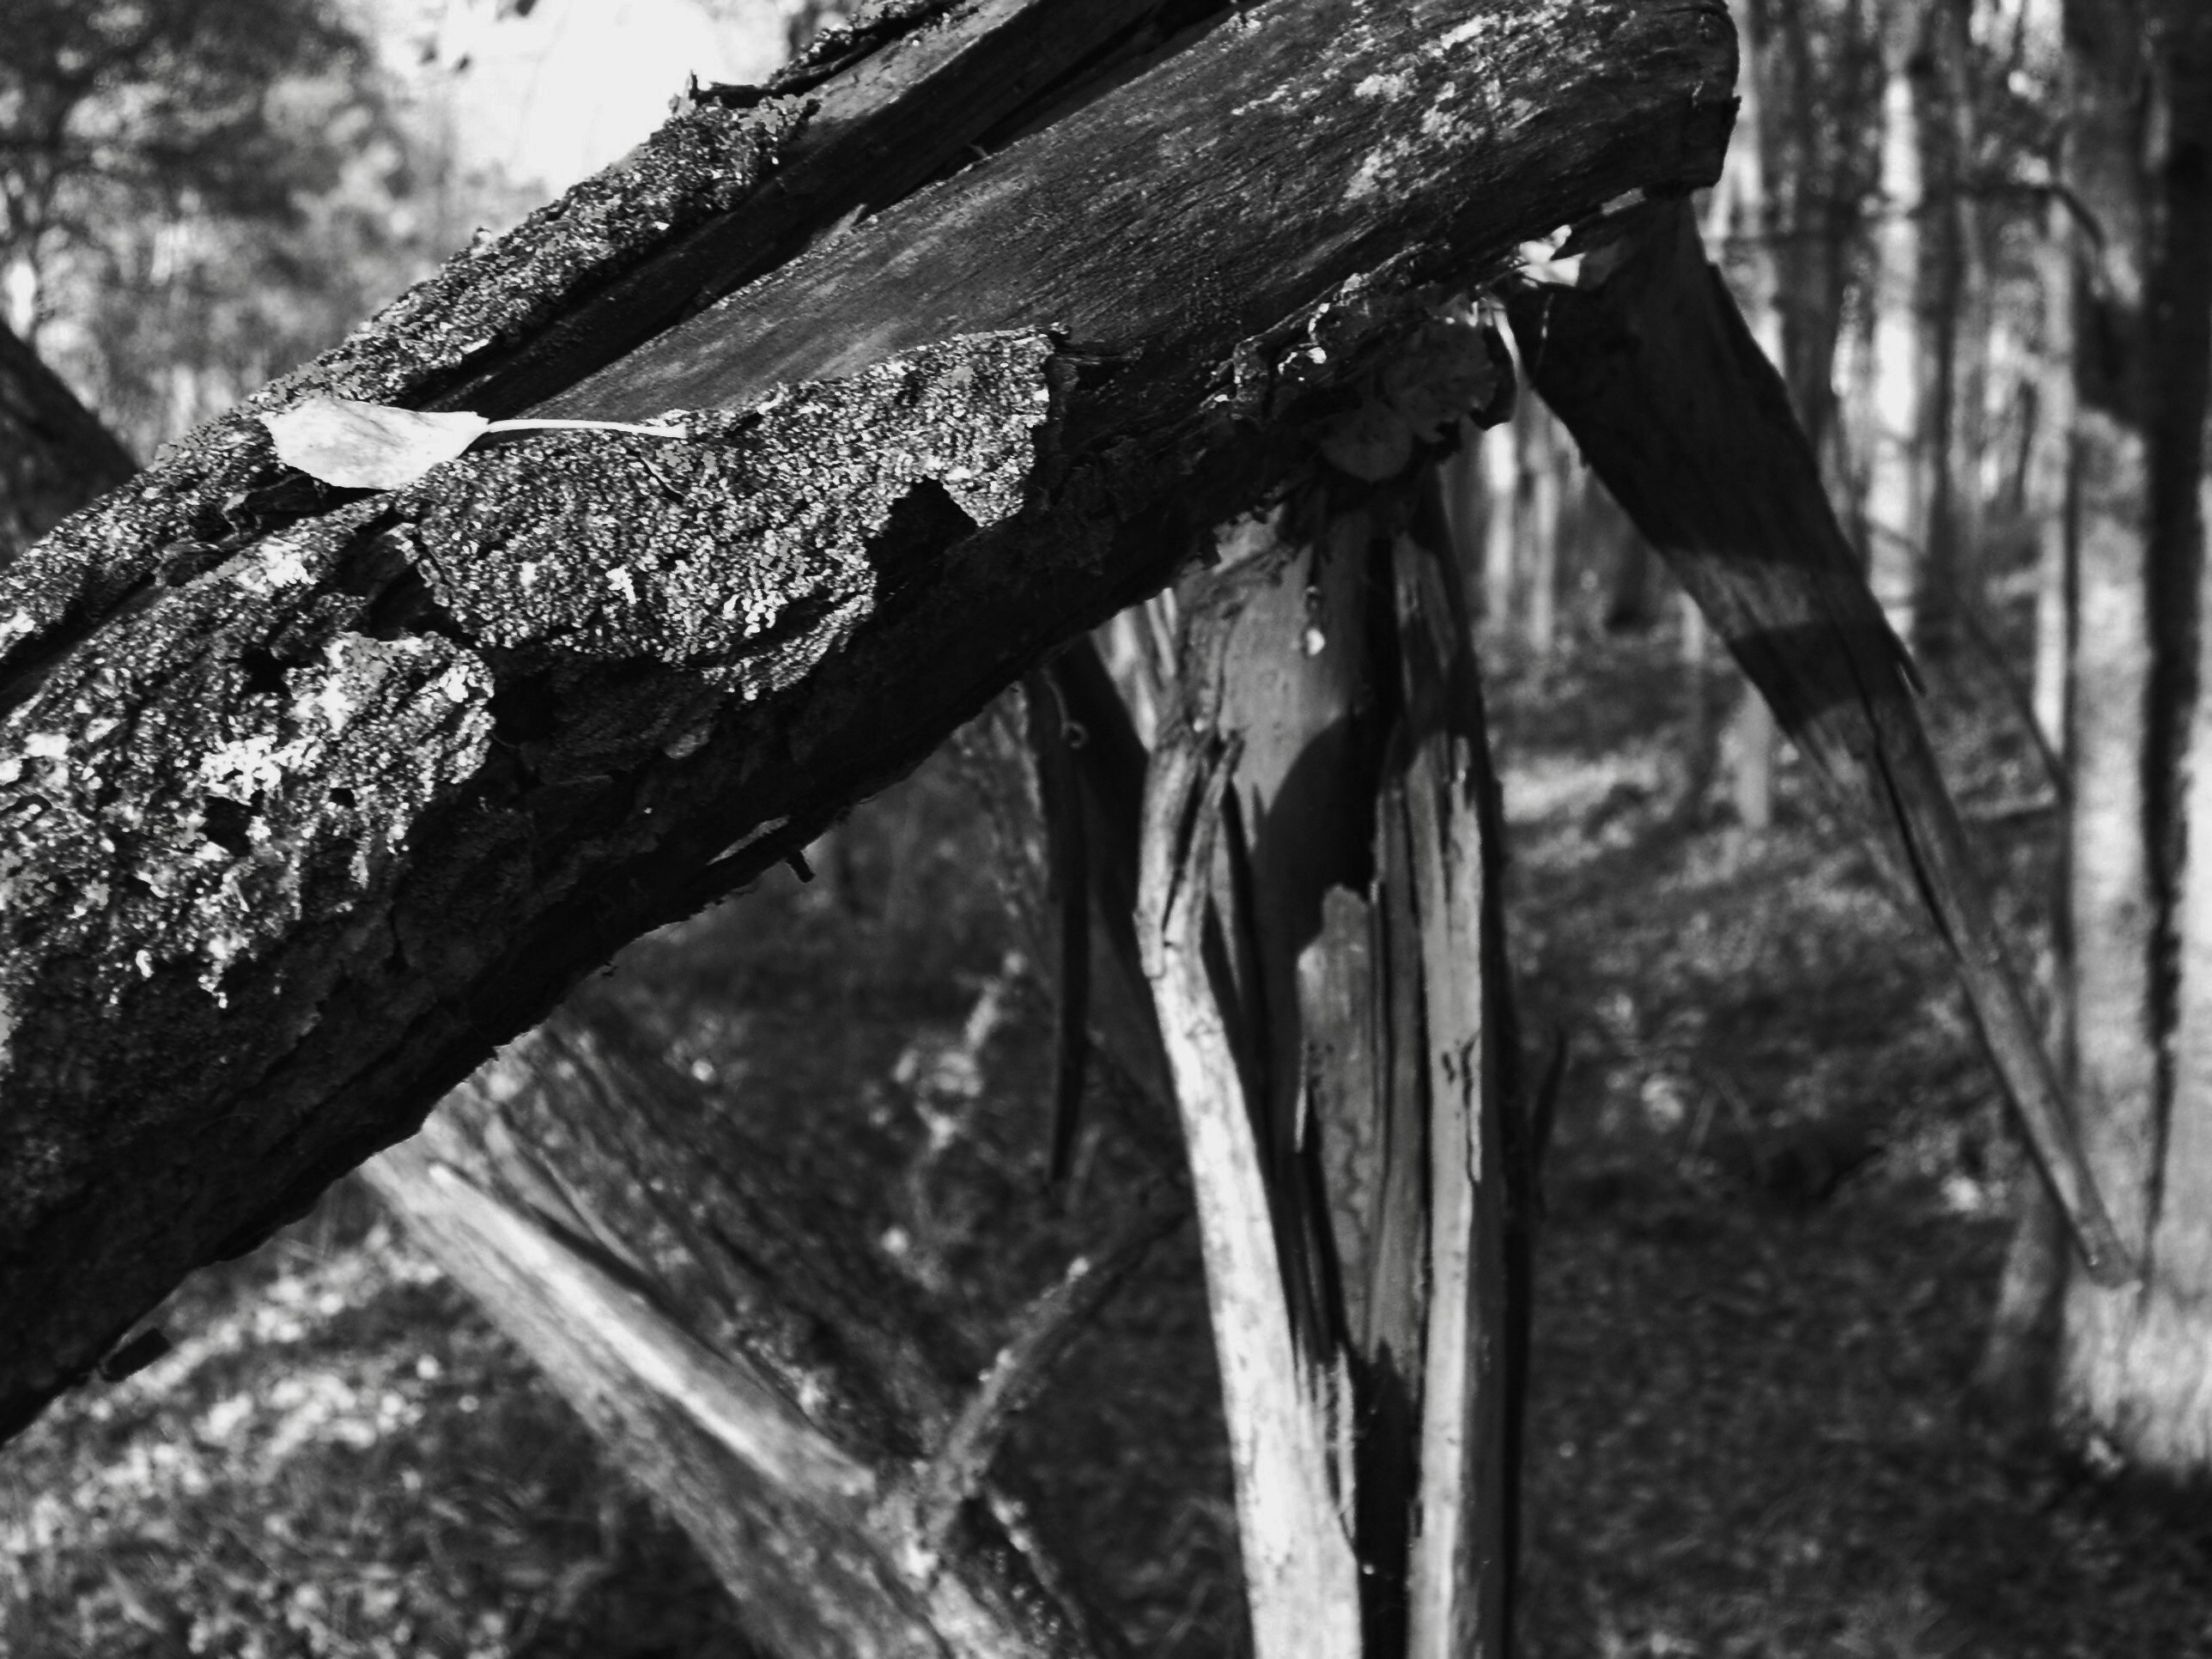 Broken_wood_-_black_and_white